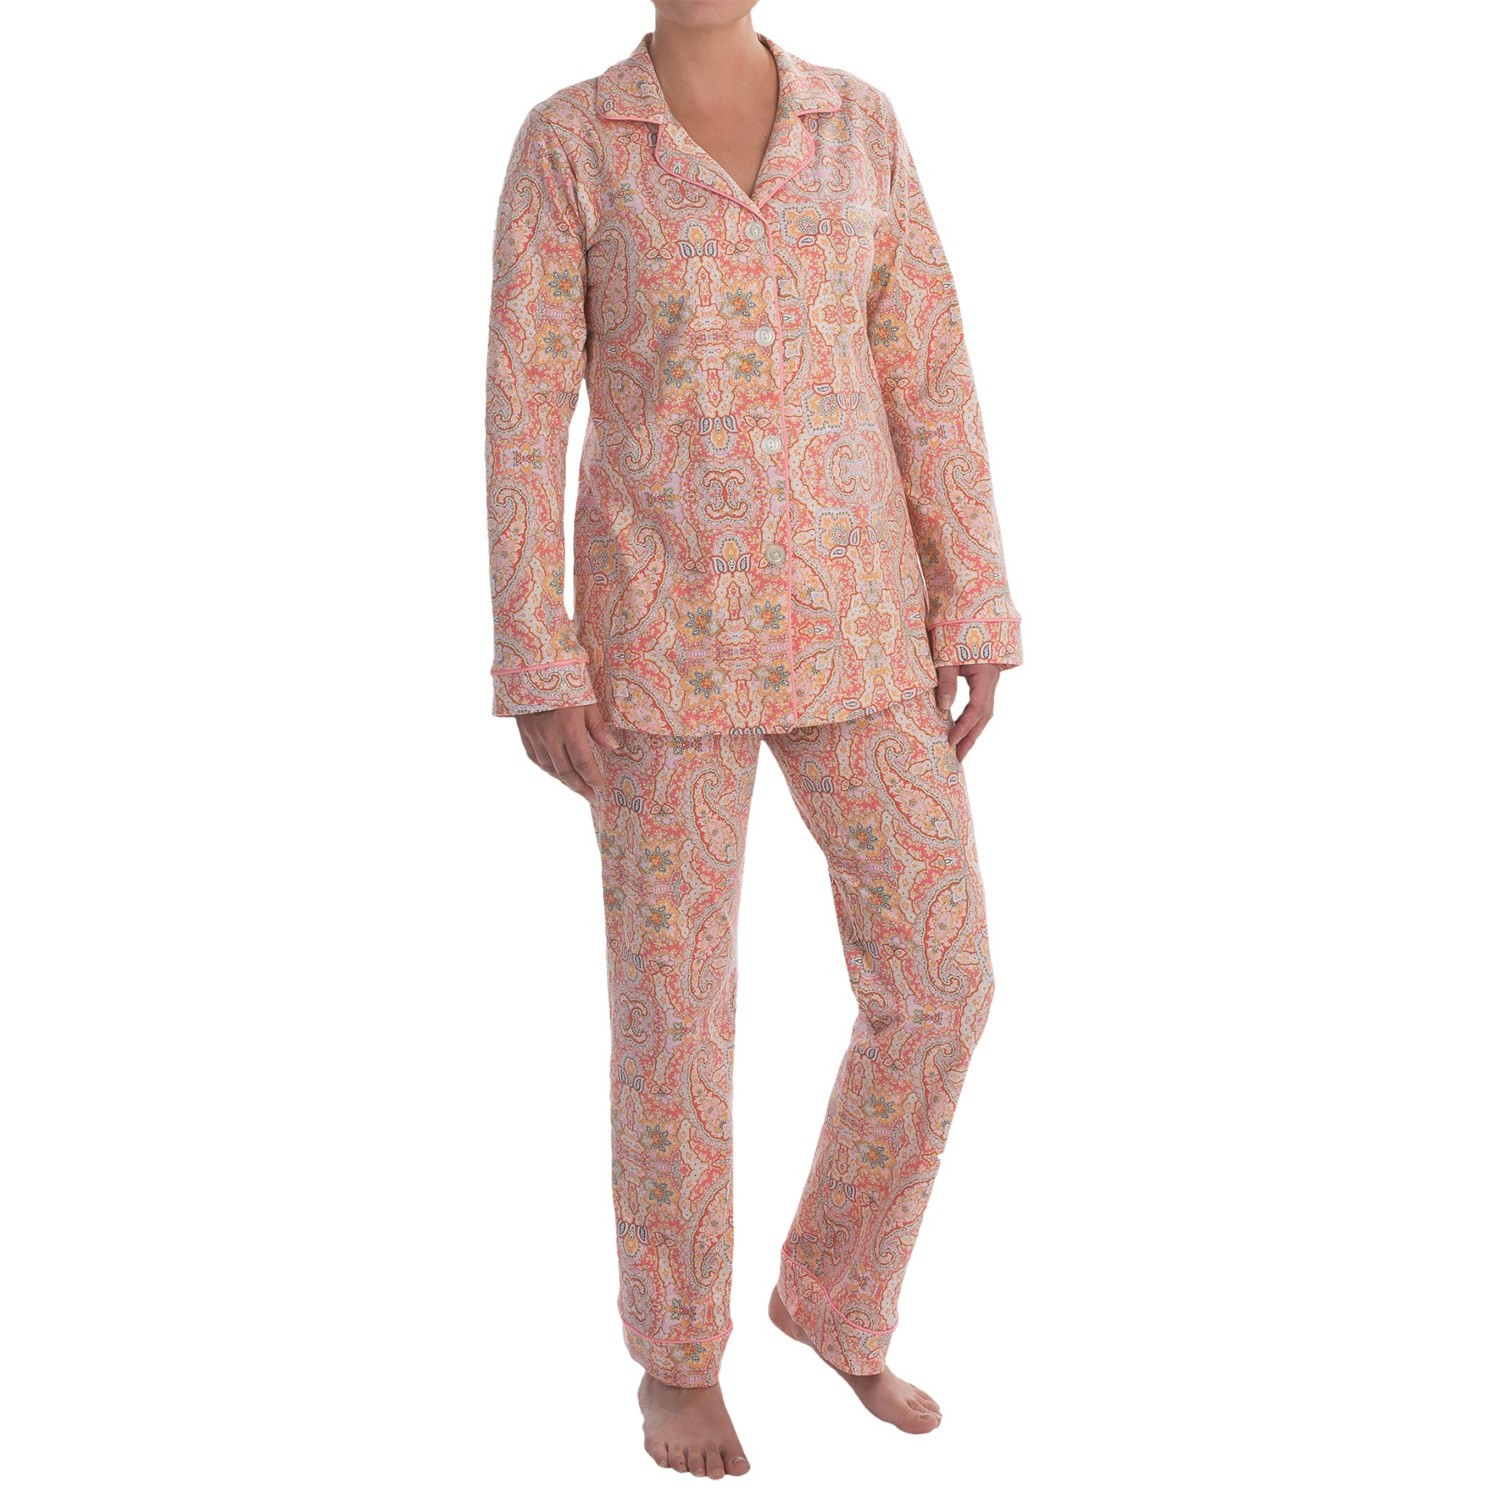 Cotton Knit Luxury Bedhead Patterned Cotton Knit Pajamas for Women Save Of Marvelous 41 Ideas Cotton Knit